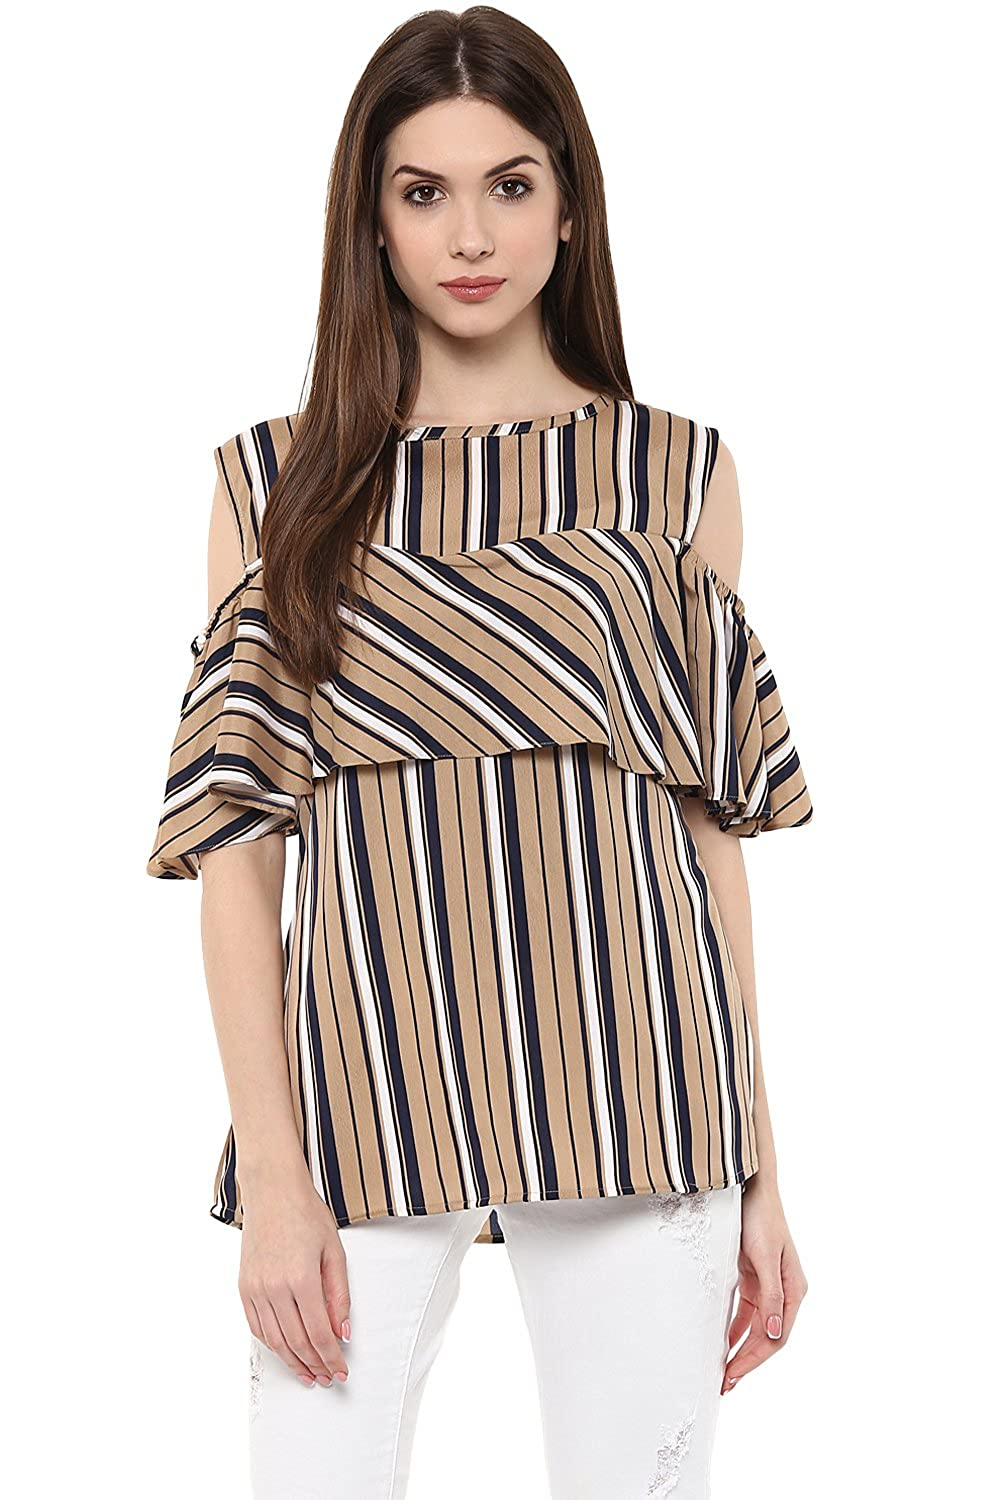 df060c507e2e8 Ahalyaa Brown Color Cold Shoulder And Boat Neck Top  Amazon.in  Clothing    Accessories